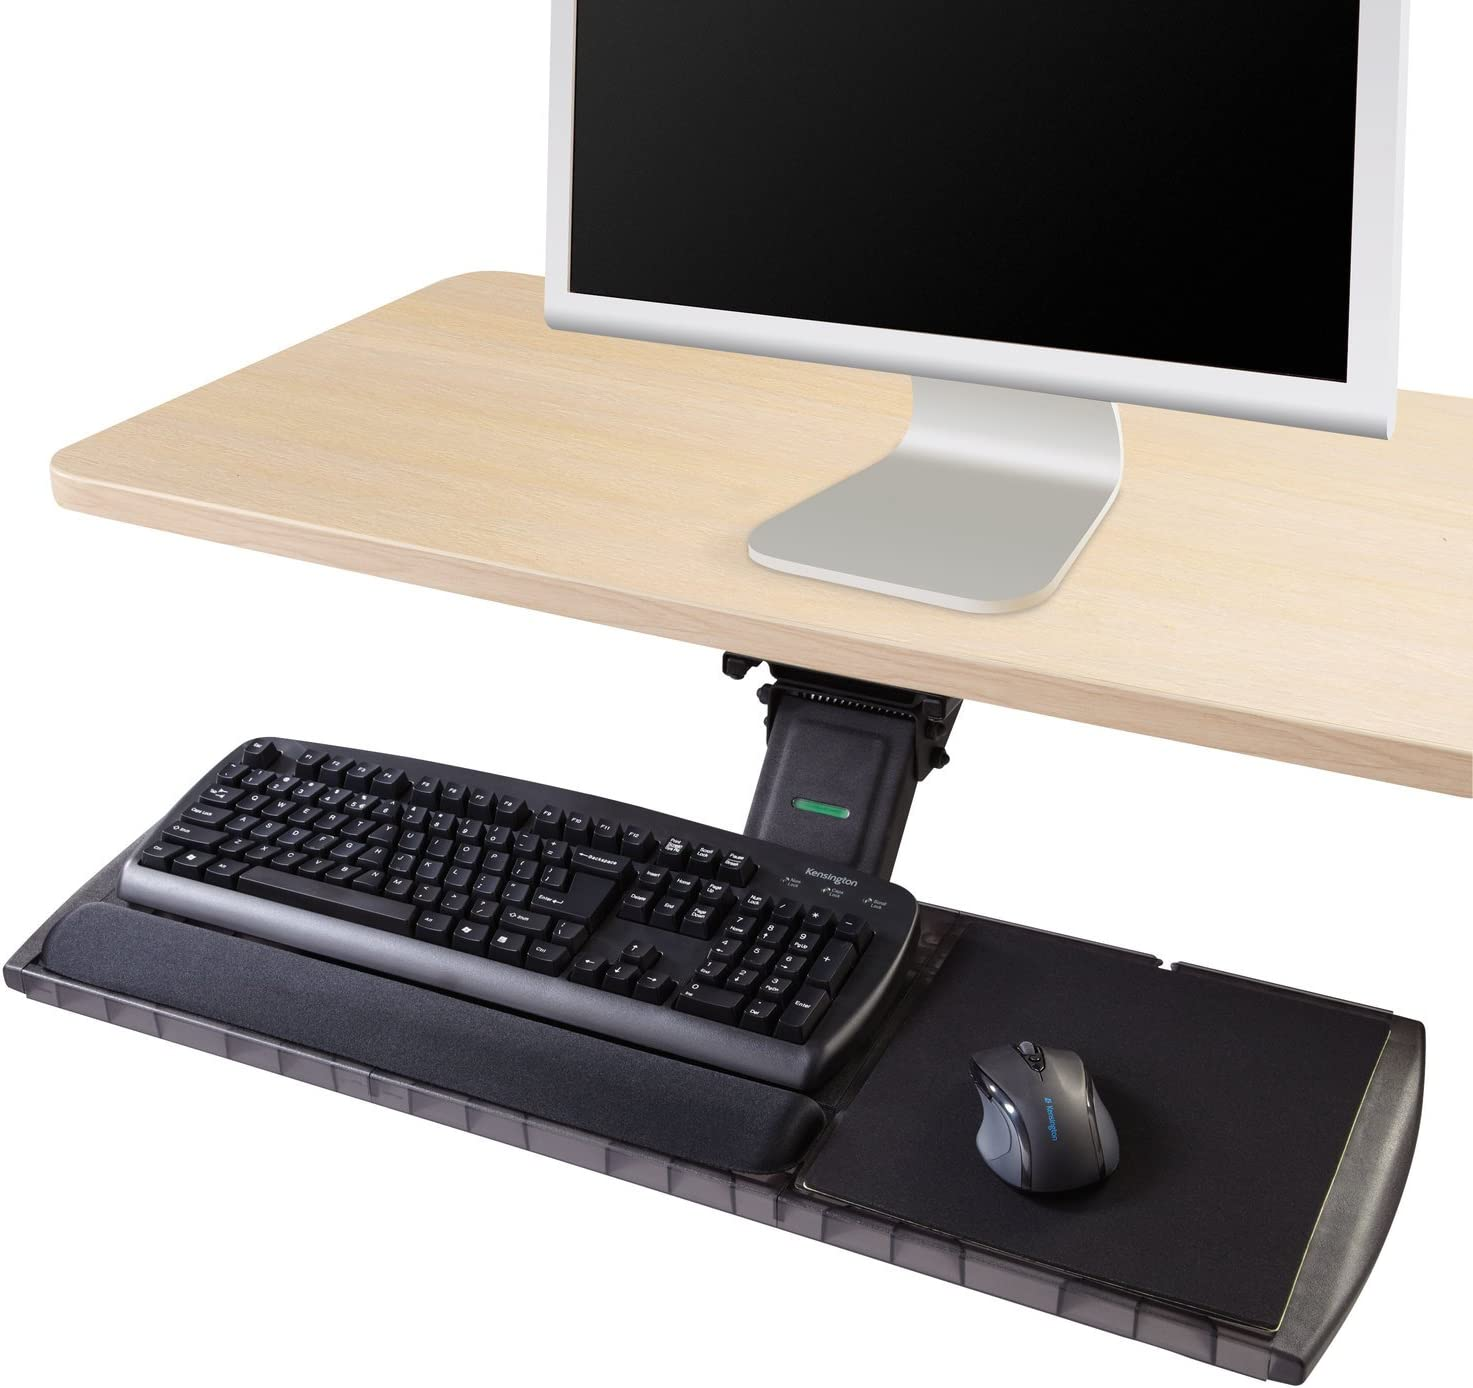 Kensington 60718 Adjustable Keyboard Platform with SmartFit System, 21-1/4w x 10d, Black